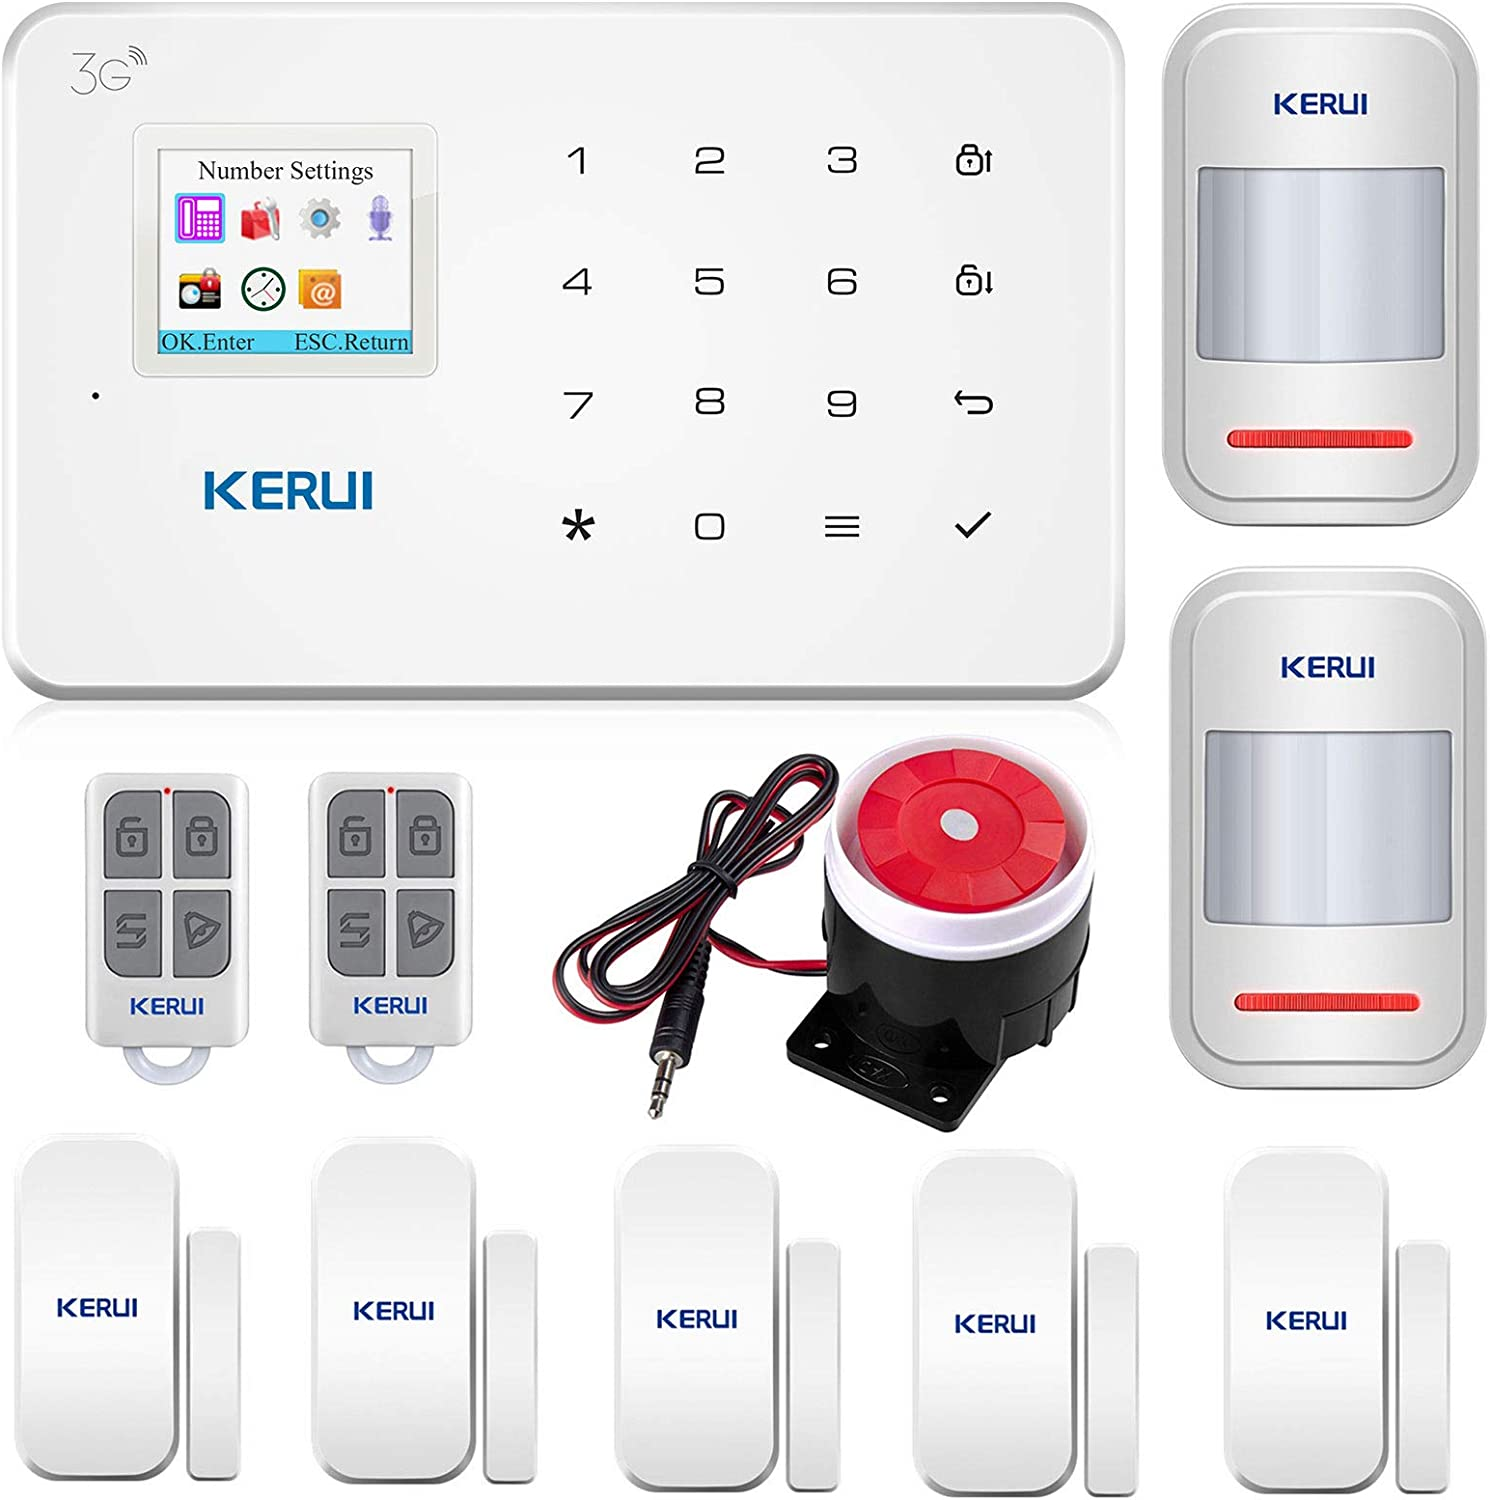 KERUI Wireless GSM 3G Indoor Alarm System House Security Alarm Systems Kit, G183 DIY Smart Home Alarm Auto Dialing Operated by Wireless Remote/APP(iOS/Andriod) Easy Installation,NOT Support WiFi